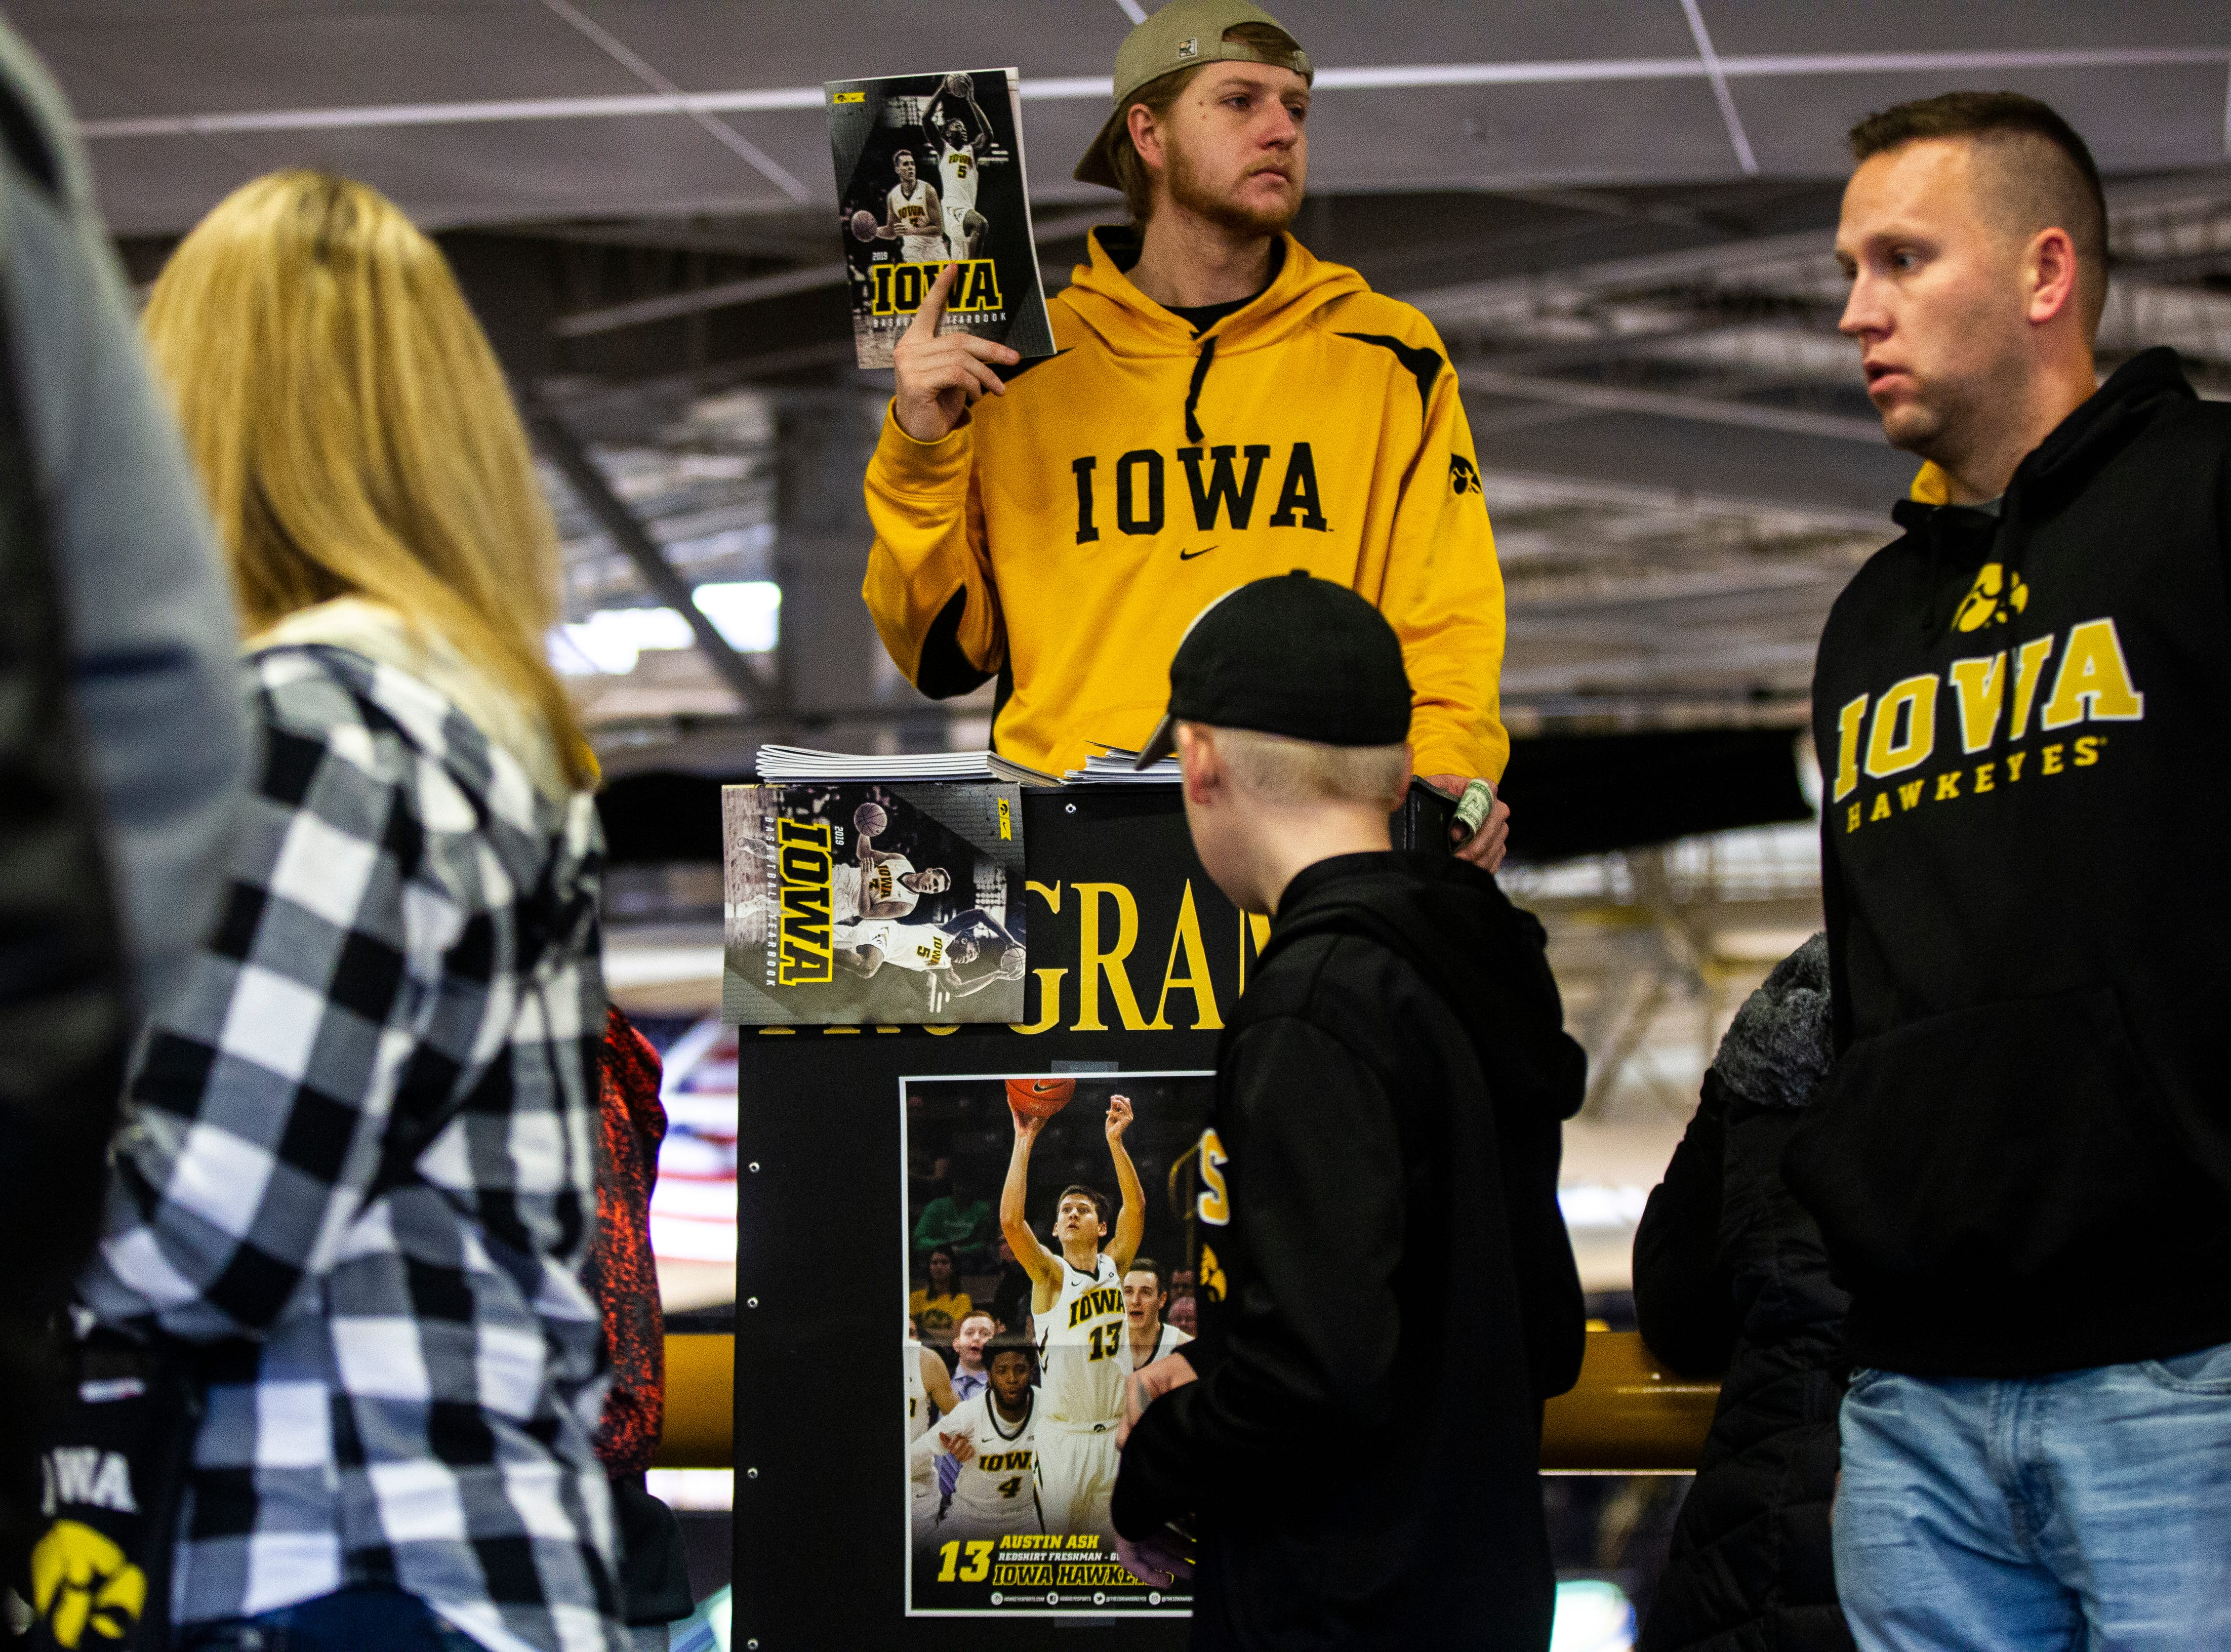 Fans walk past a podium featuring a poster of Iowa guard Austin Ash during a NCAA men's basketball game on Saturday, Dec. 22, 2018, at Carver-Hawkeye Arena in Iowa City.